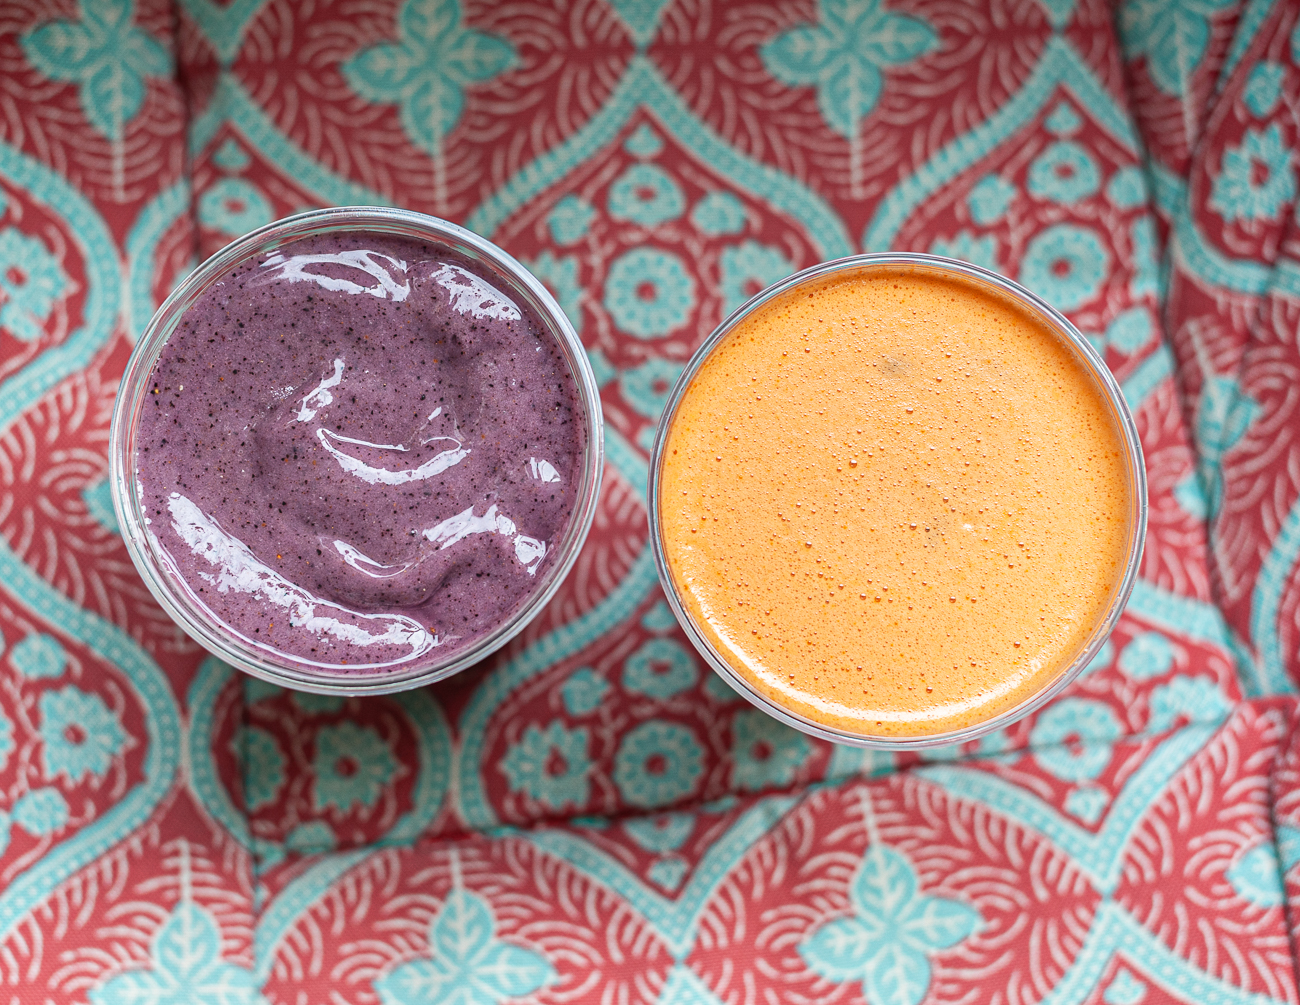 Berry Good Smoothie (blueberry, pineapple, vanilla rice milk, avocado, stevia, and cinnamon) and Carrot Apple Juice / Image: Kellie Coleman // Published: 12.27.20